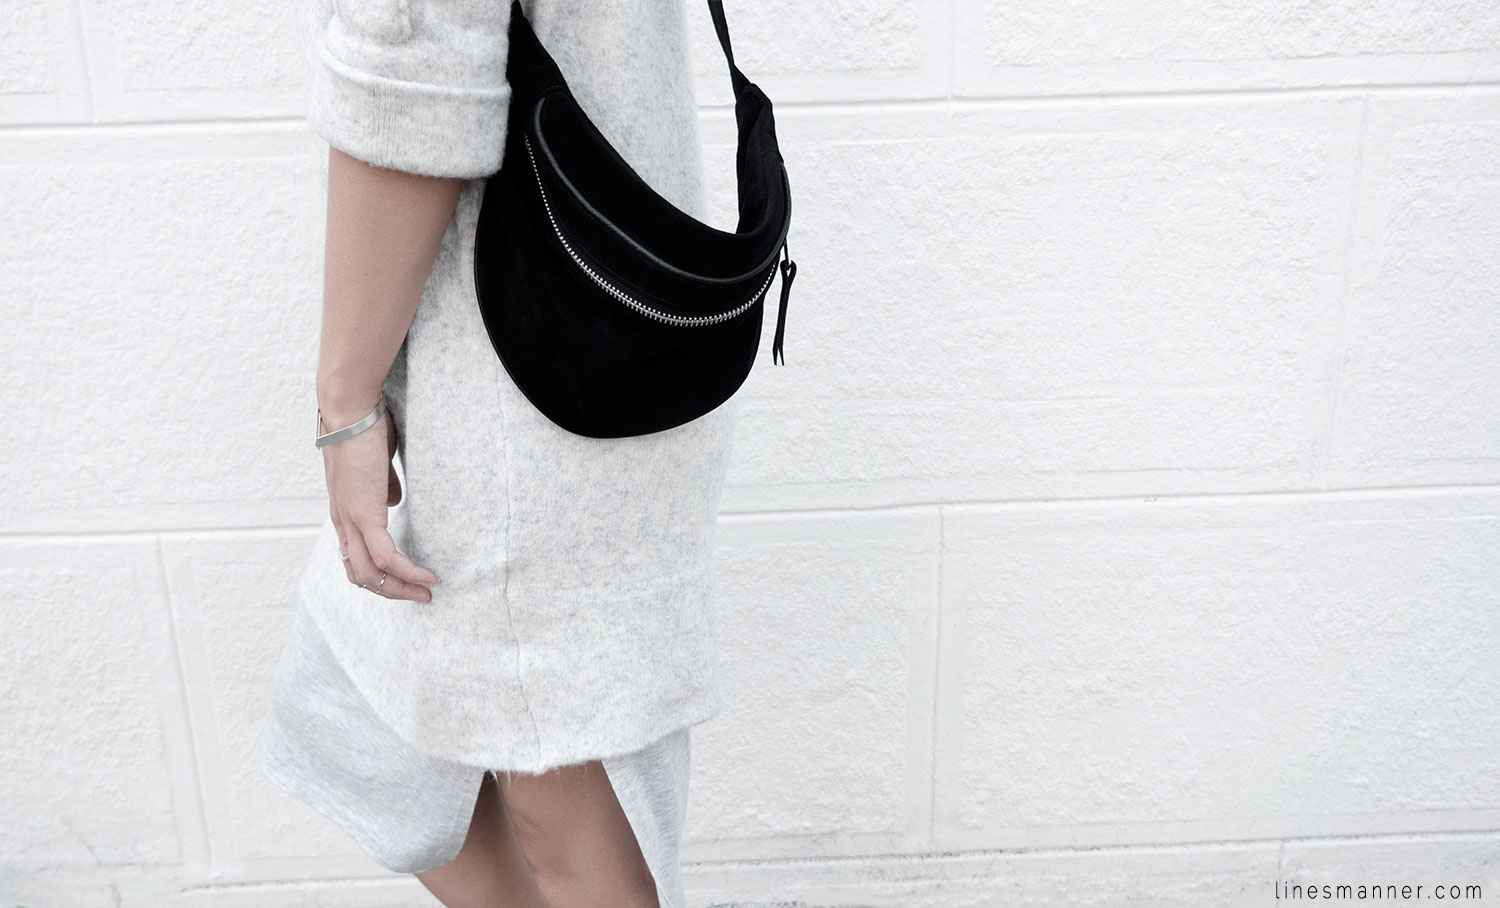 Lines-Manner-Fashion-Collaboration-The_Demeler-Monochrome-Grey_on_Grey-Fresh-Brightly-Outfit-Simplicity-Details-Trend-Minimalist-Flowy-Layering-Sleeves-Sweater_Dress-7